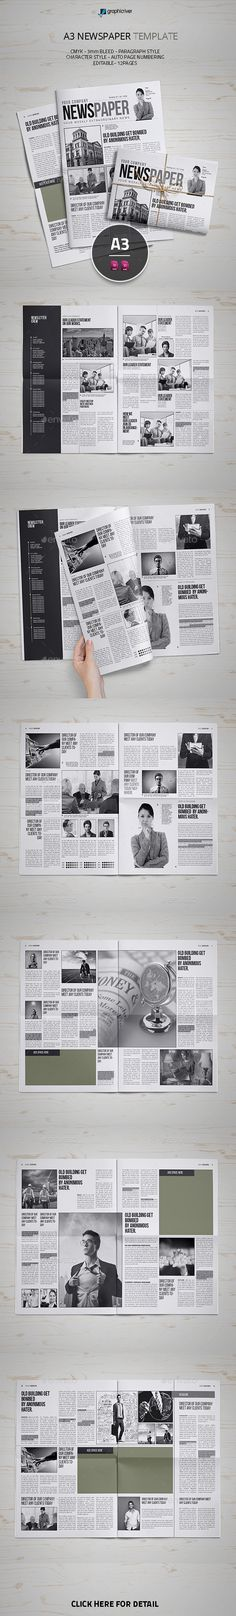 A3 Newspaper Template - Newsletters Print Templates Download here : https://graphicriver.net/item/a3-newspaper-template/13422885?s_rank=69&ref=Al-fatih